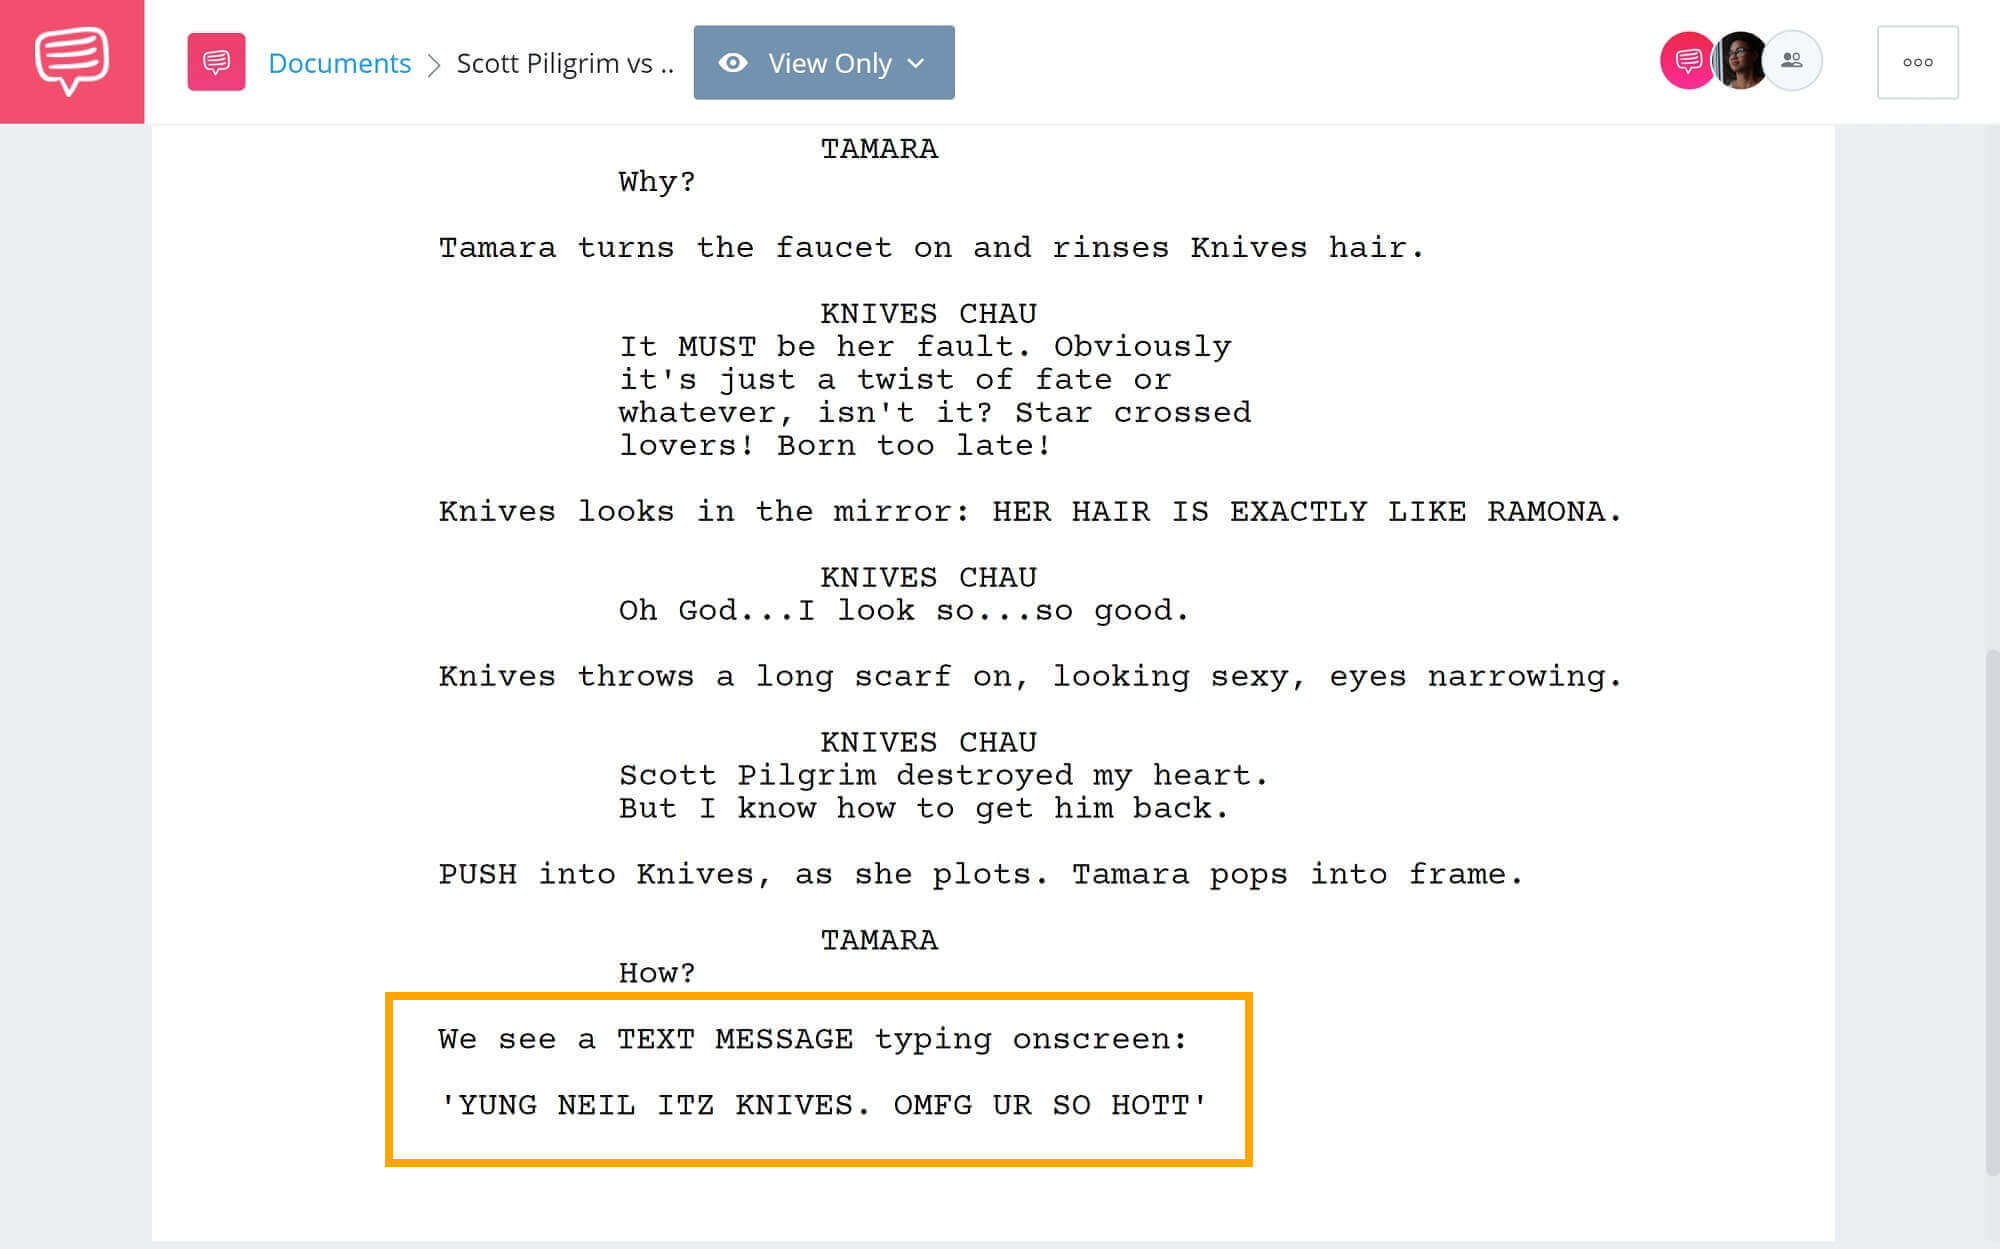 How-to-Write-Text-Messages-in-Screenplay-Example from Scott and Piligrim-StudioBinder-Scriptwriting-Software (1)